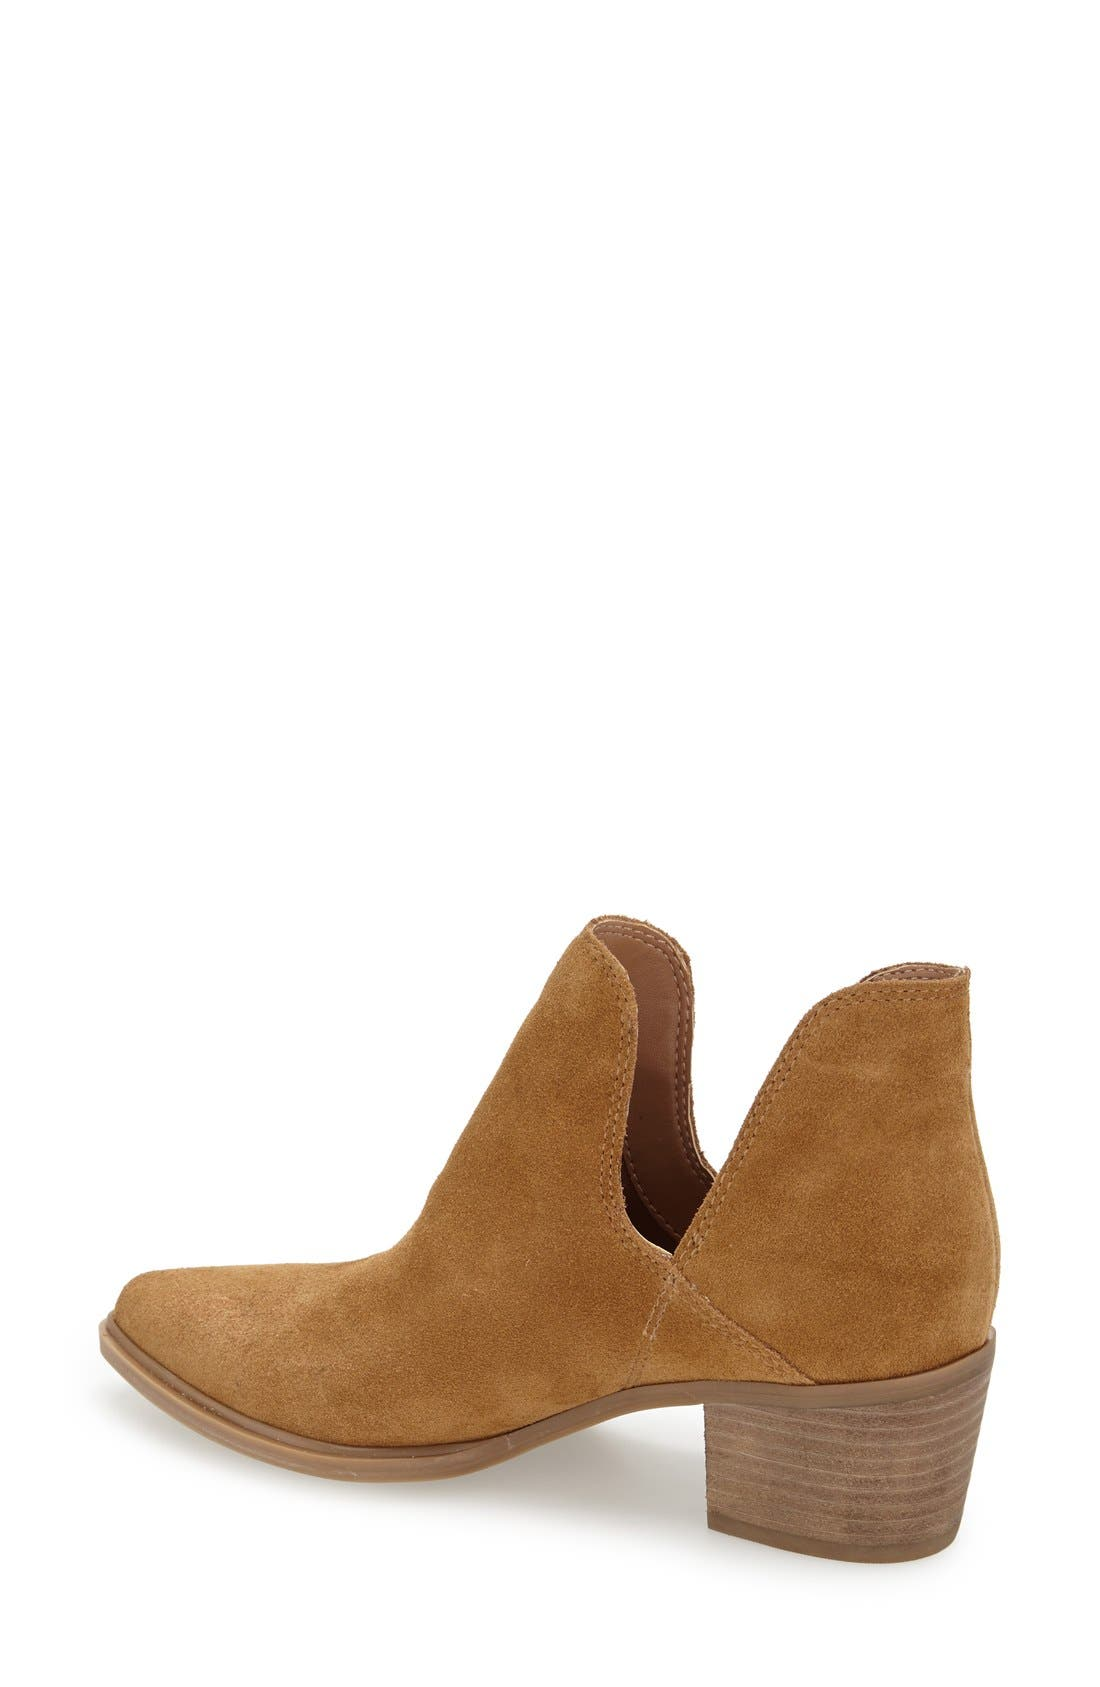 'Dextir' Pointy Toe Ankle Bootie,                             Alternate thumbnail 2, color,                             Camel Suede